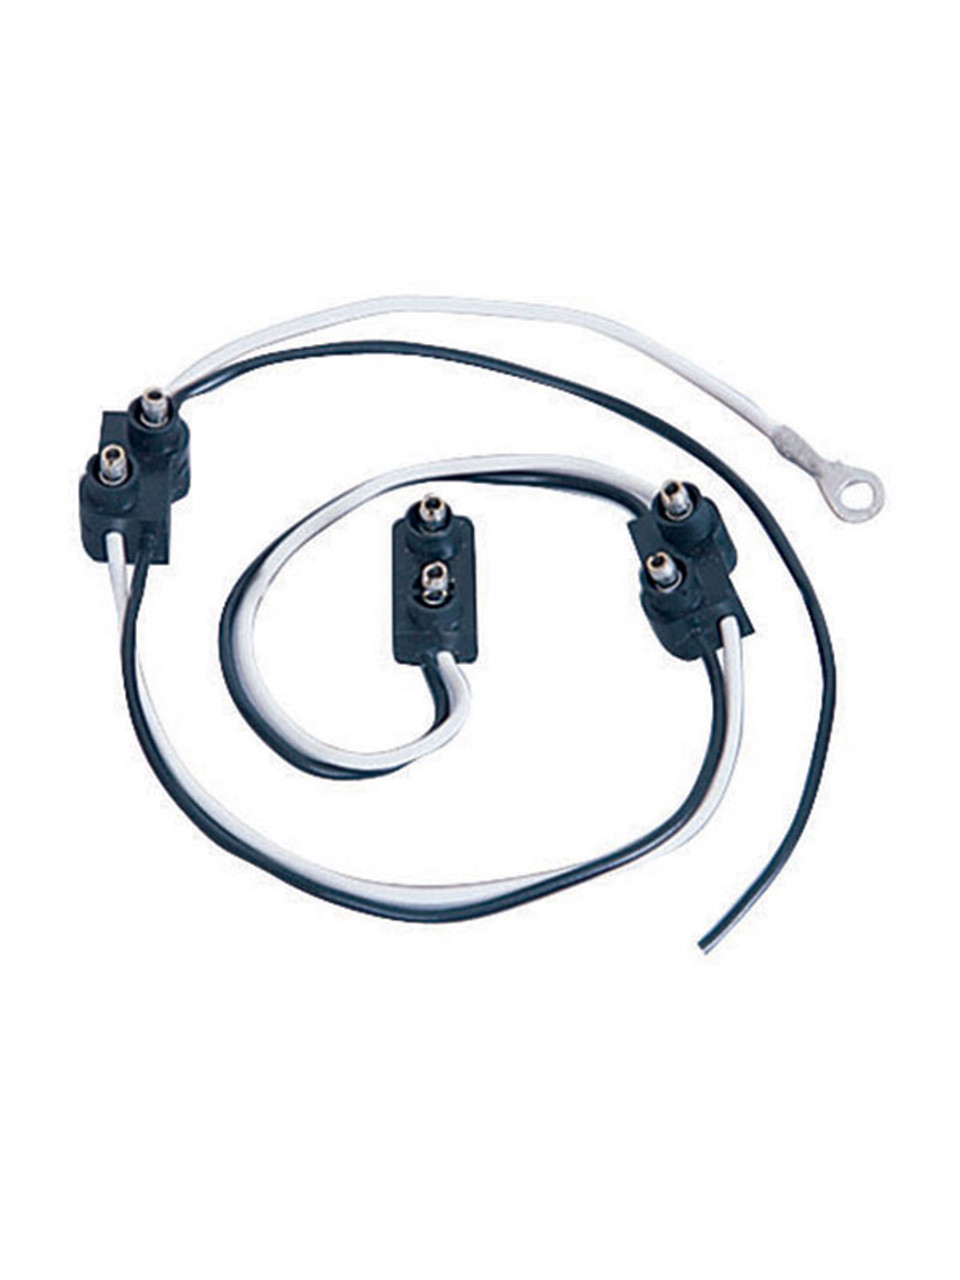 150-49 --- Peterson Replacement ID Bar Wire Harness